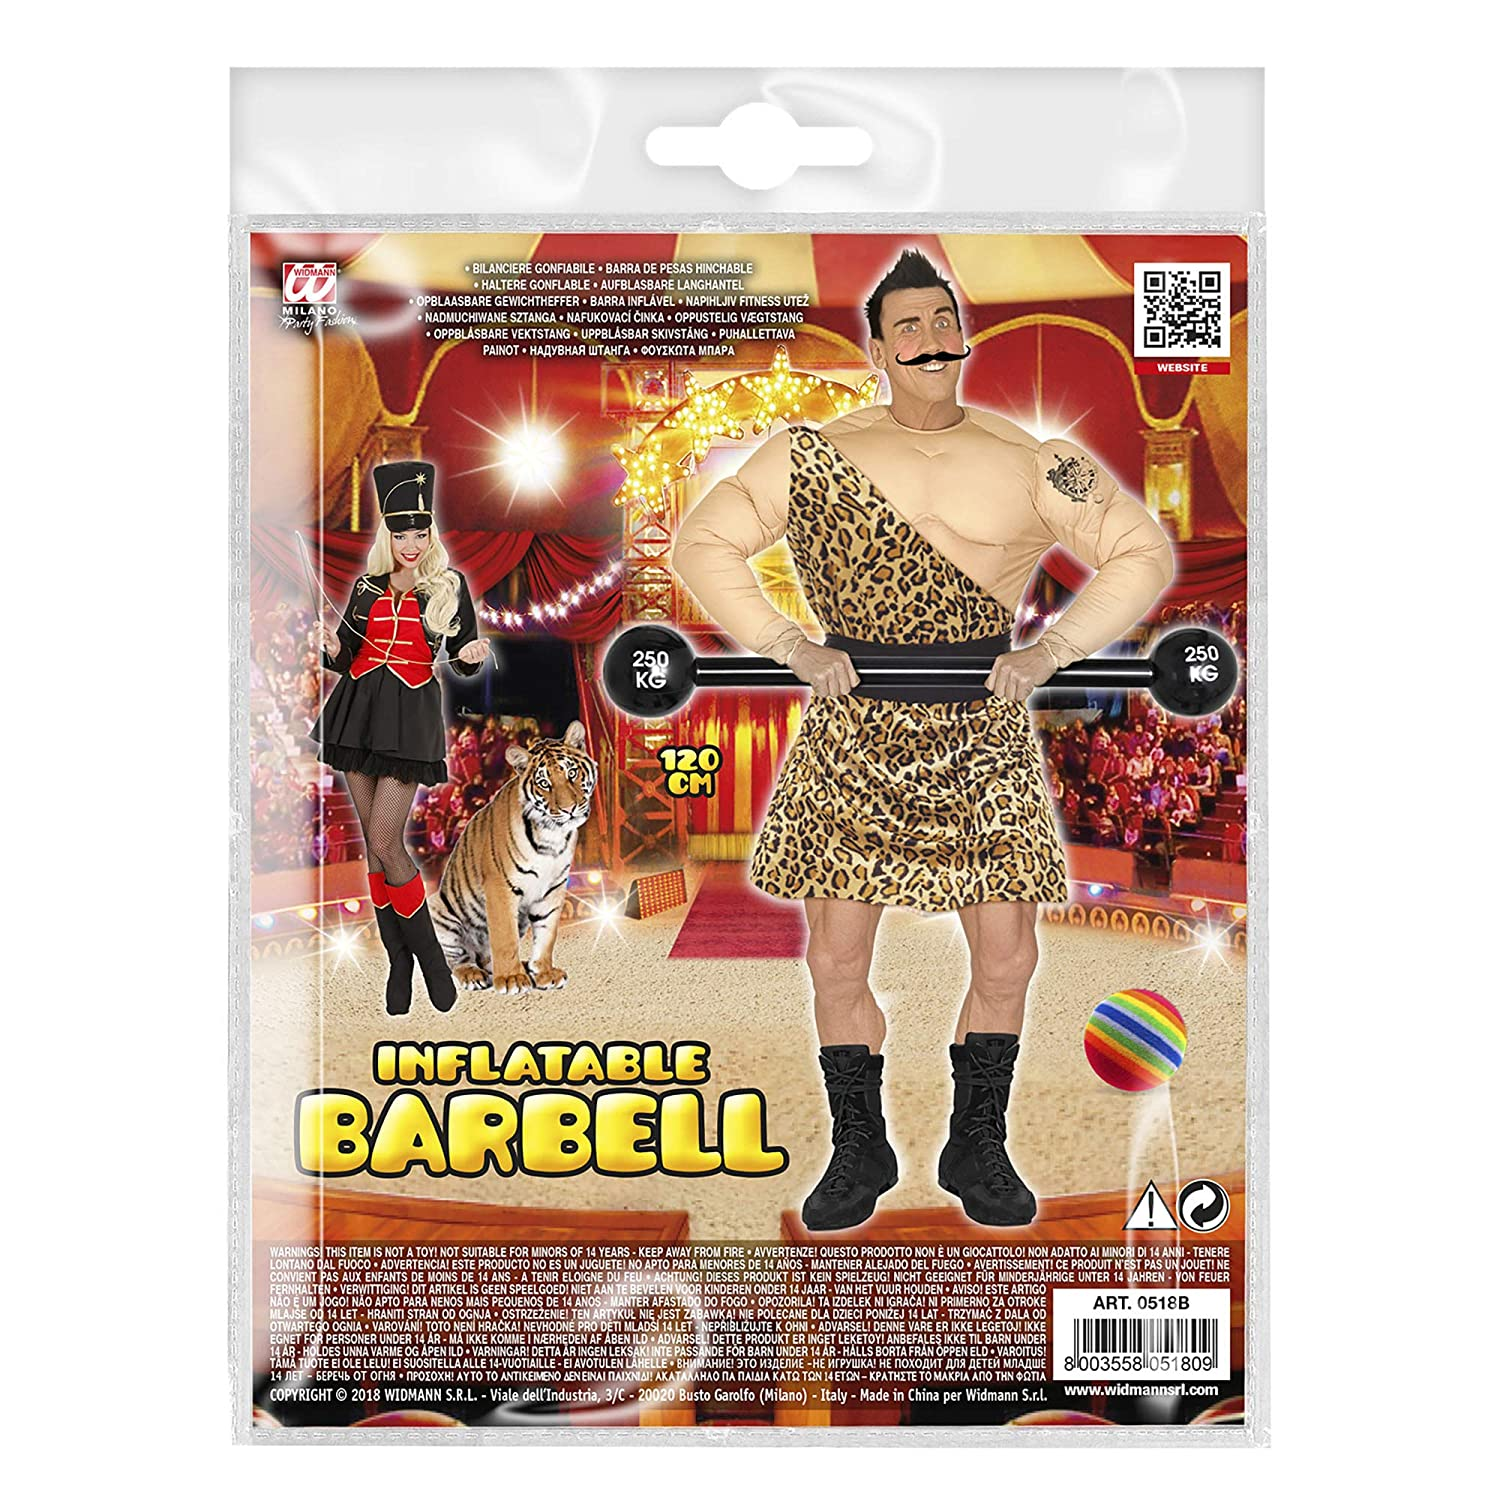 120cm Inflatable Barbell